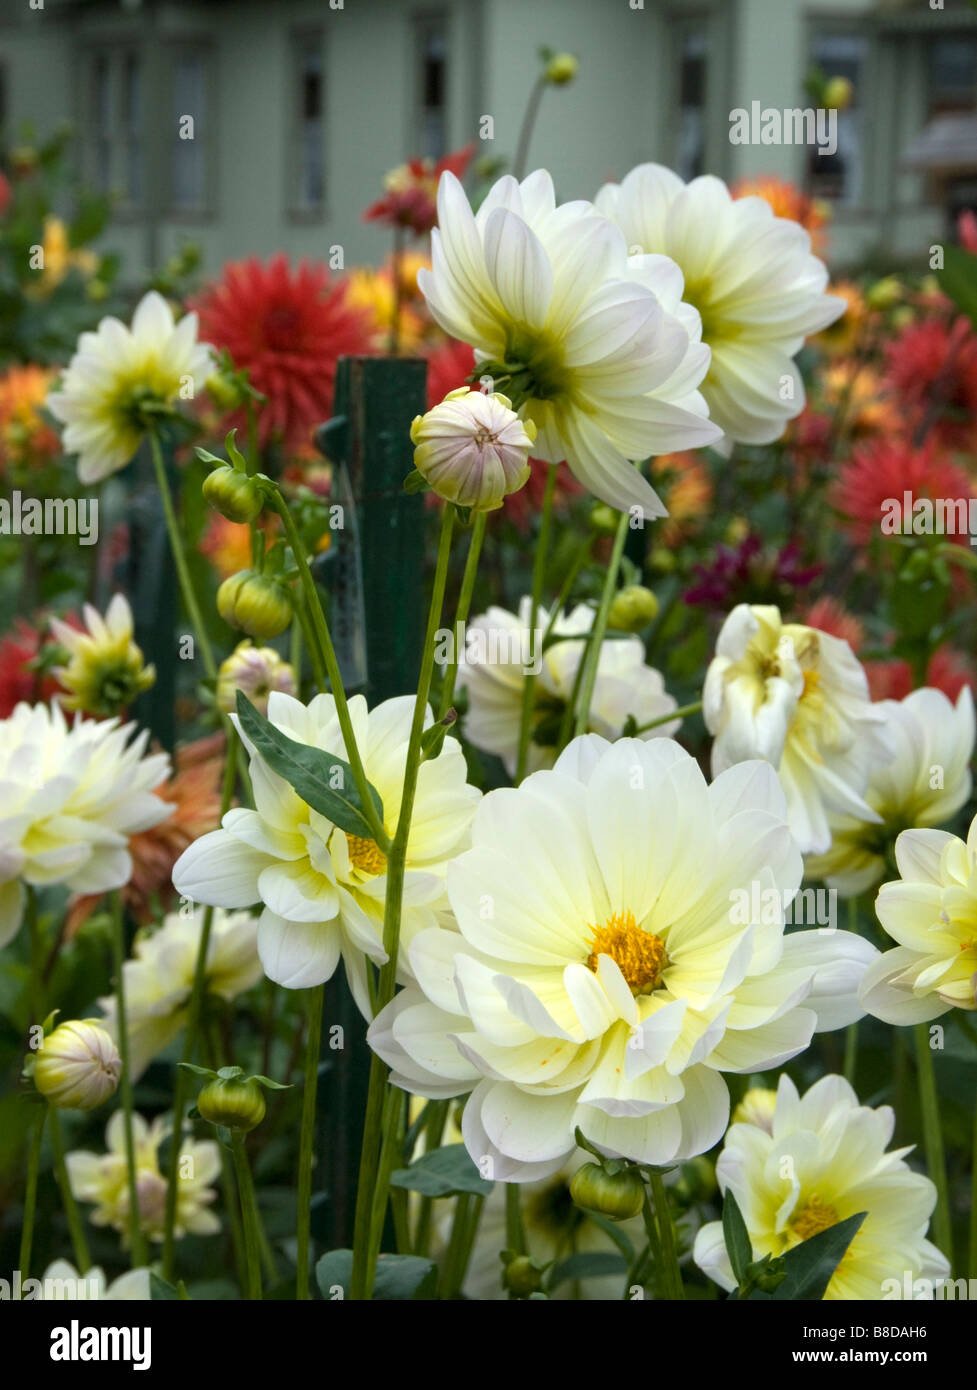 A Beautiful Dahlia Flower Garden Growing In Front Of An Old Historic Stock Photo Alamy